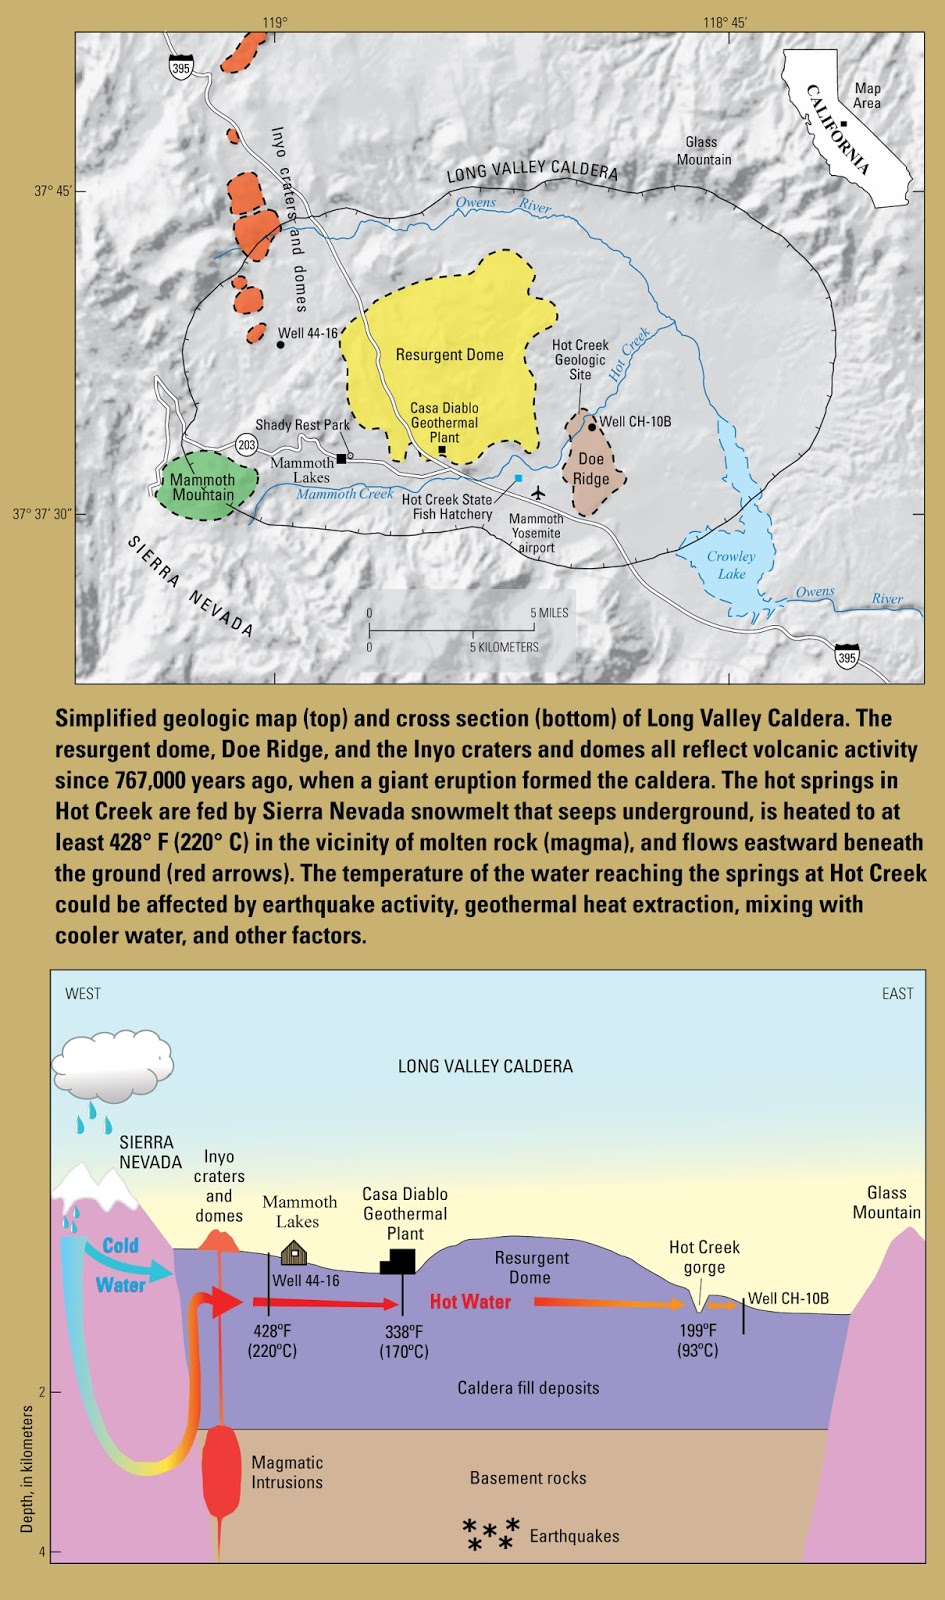 usa california new fact sheet on the long valley caldera geothermal system